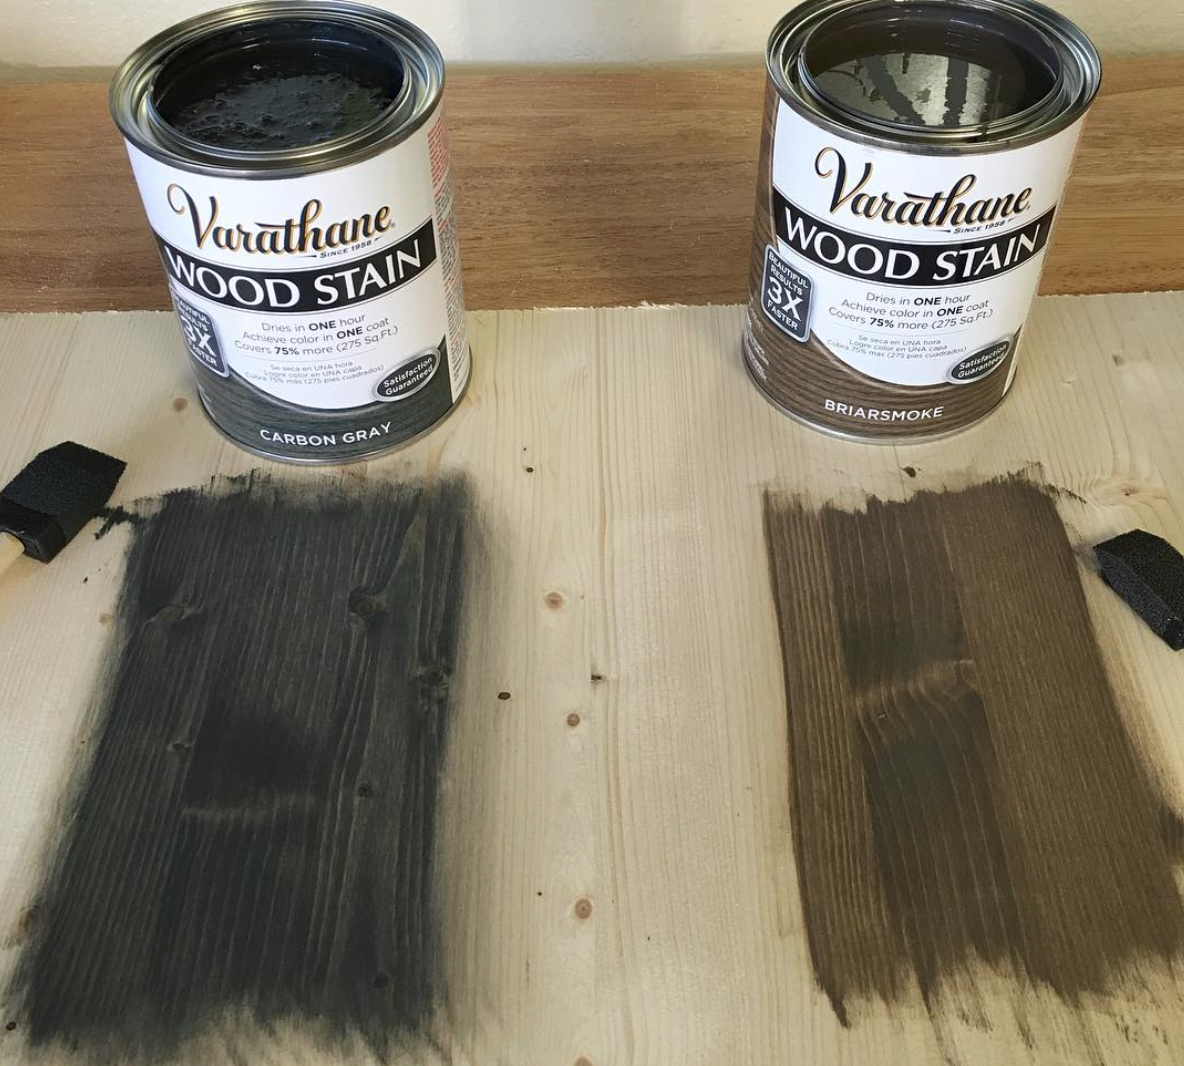 Learn How To Get The Perfect Stained Finish On Furniture With This Quick And Easy Follow Video By Shanty 2 Chic